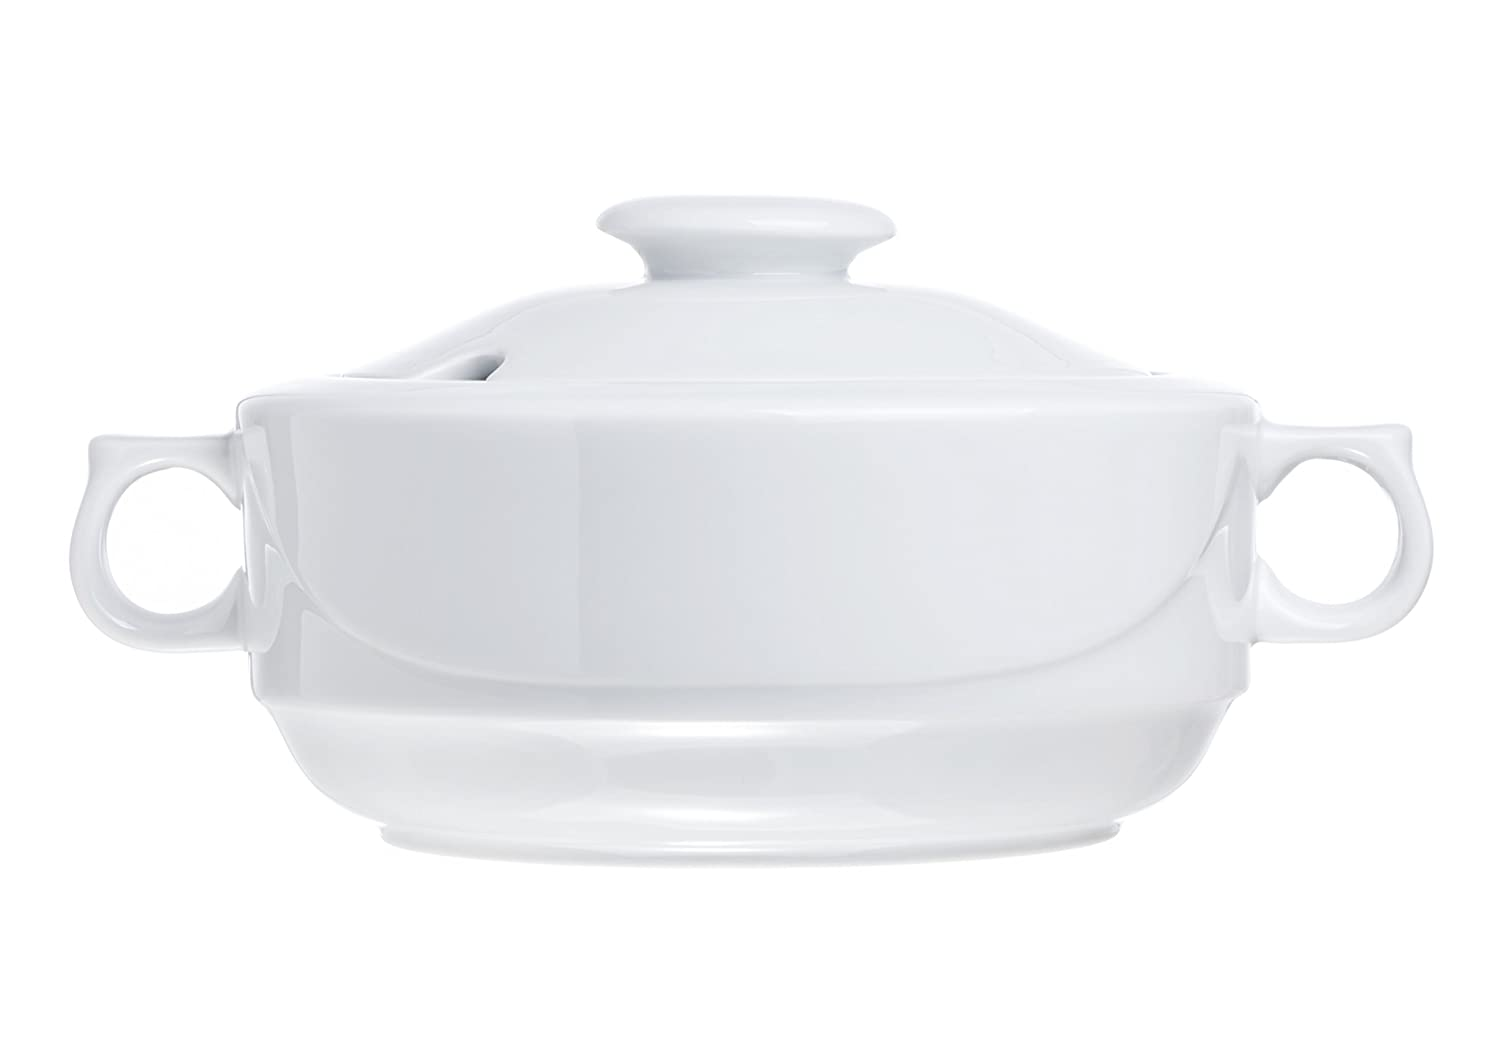 Soup Tureen with Lid, 2.8 Quart Family Size (for 6), White Porcelain, Restaurant&Hotel Quality BF BAF10219